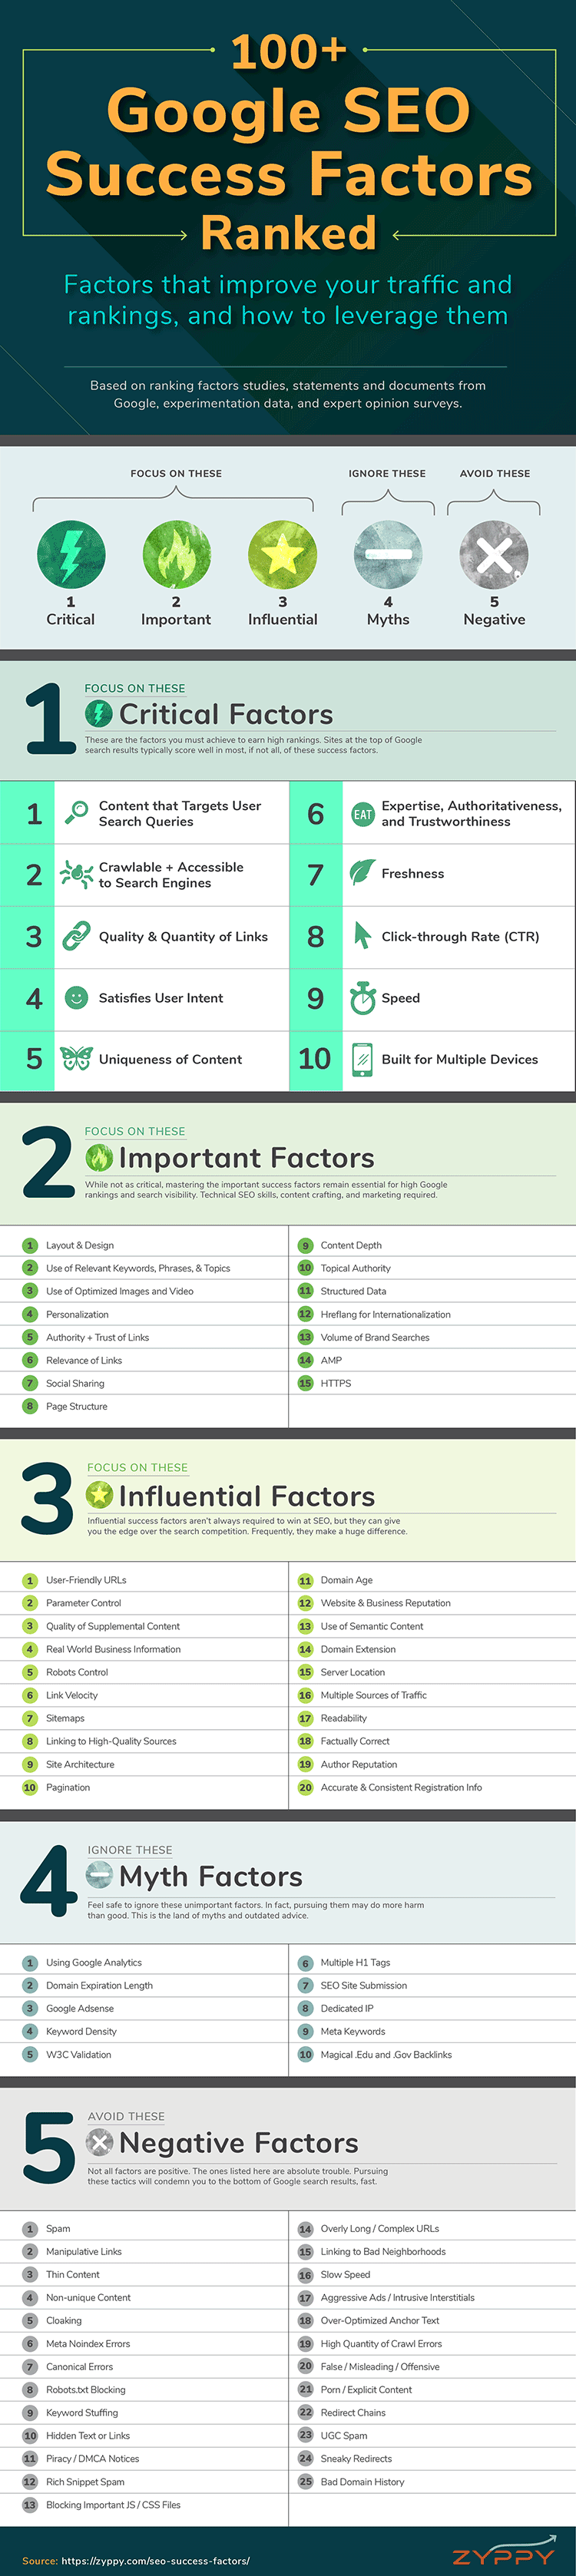 SEO Success Factors